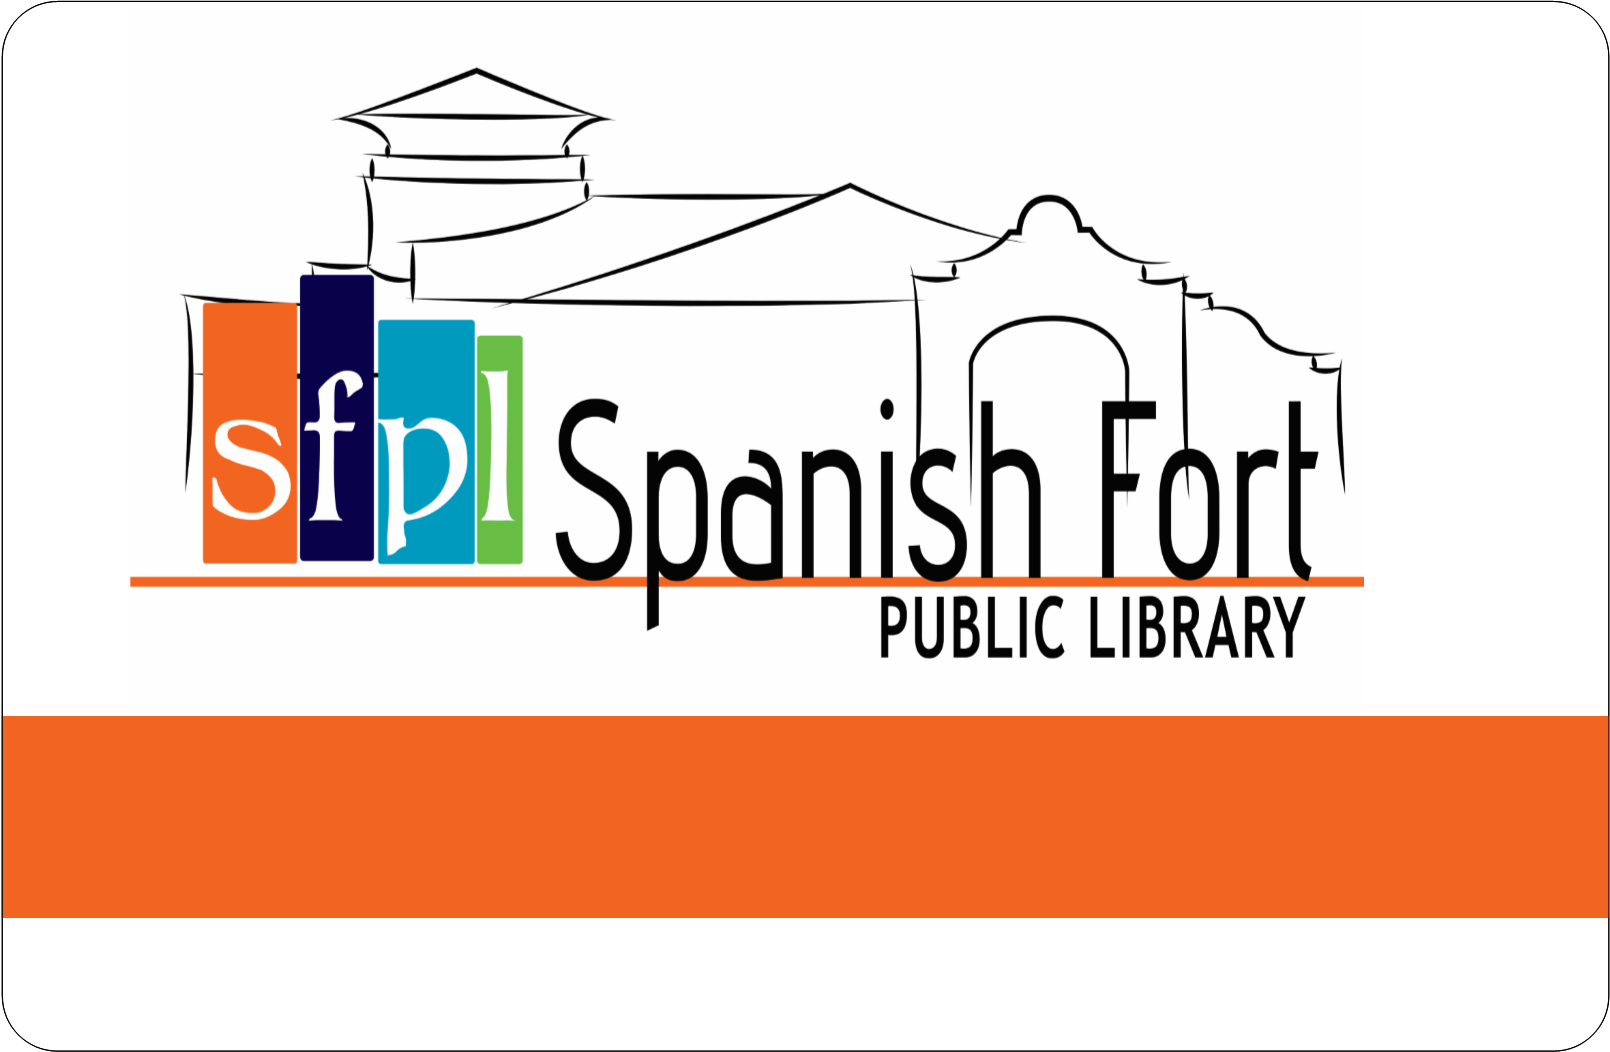 image of SFPL Library card with logo